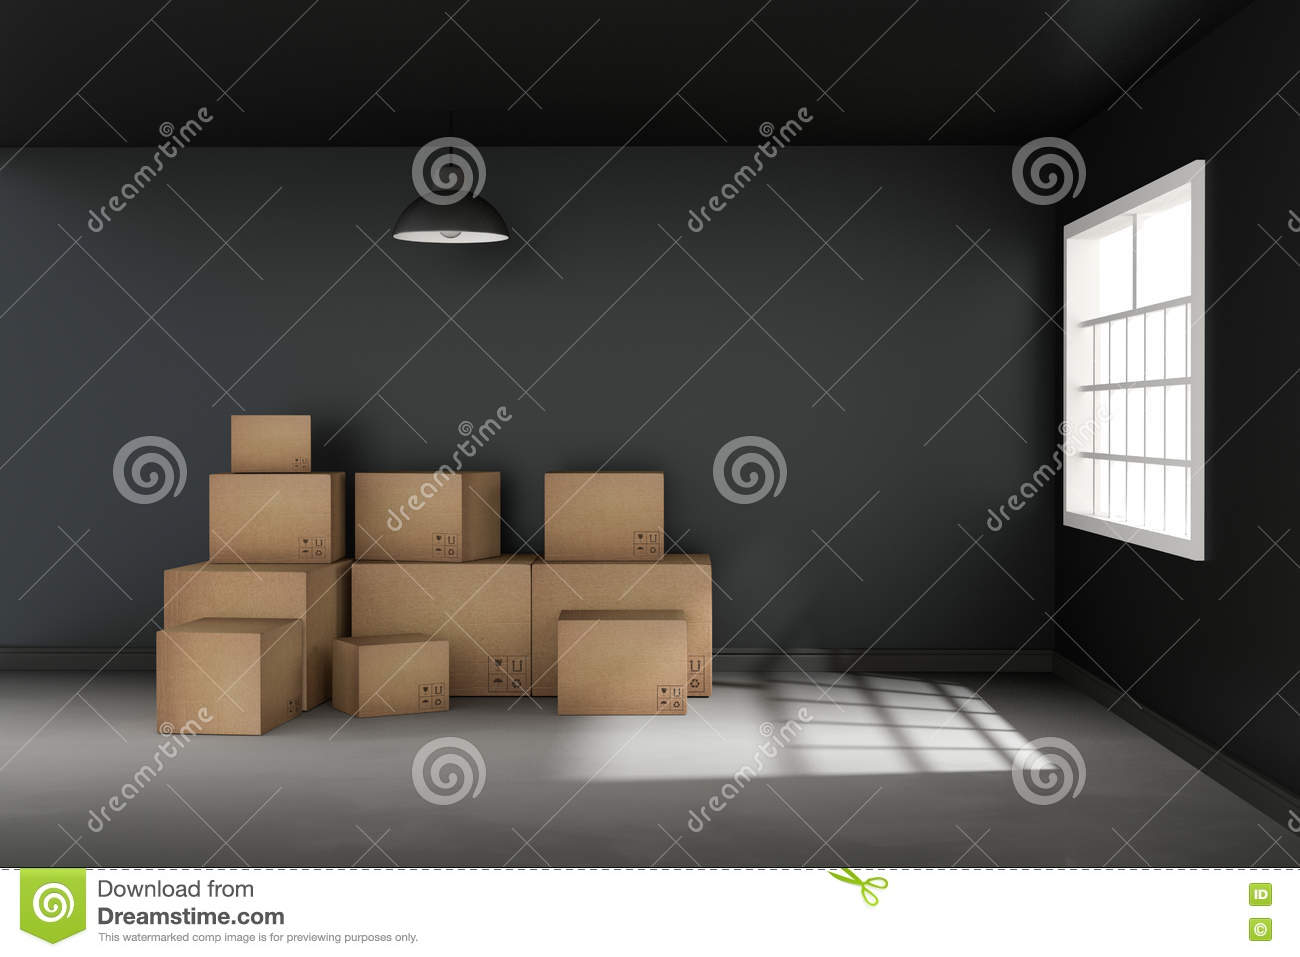 Room of cardboard boxes for moving house stock photo for Used boxes for moving house